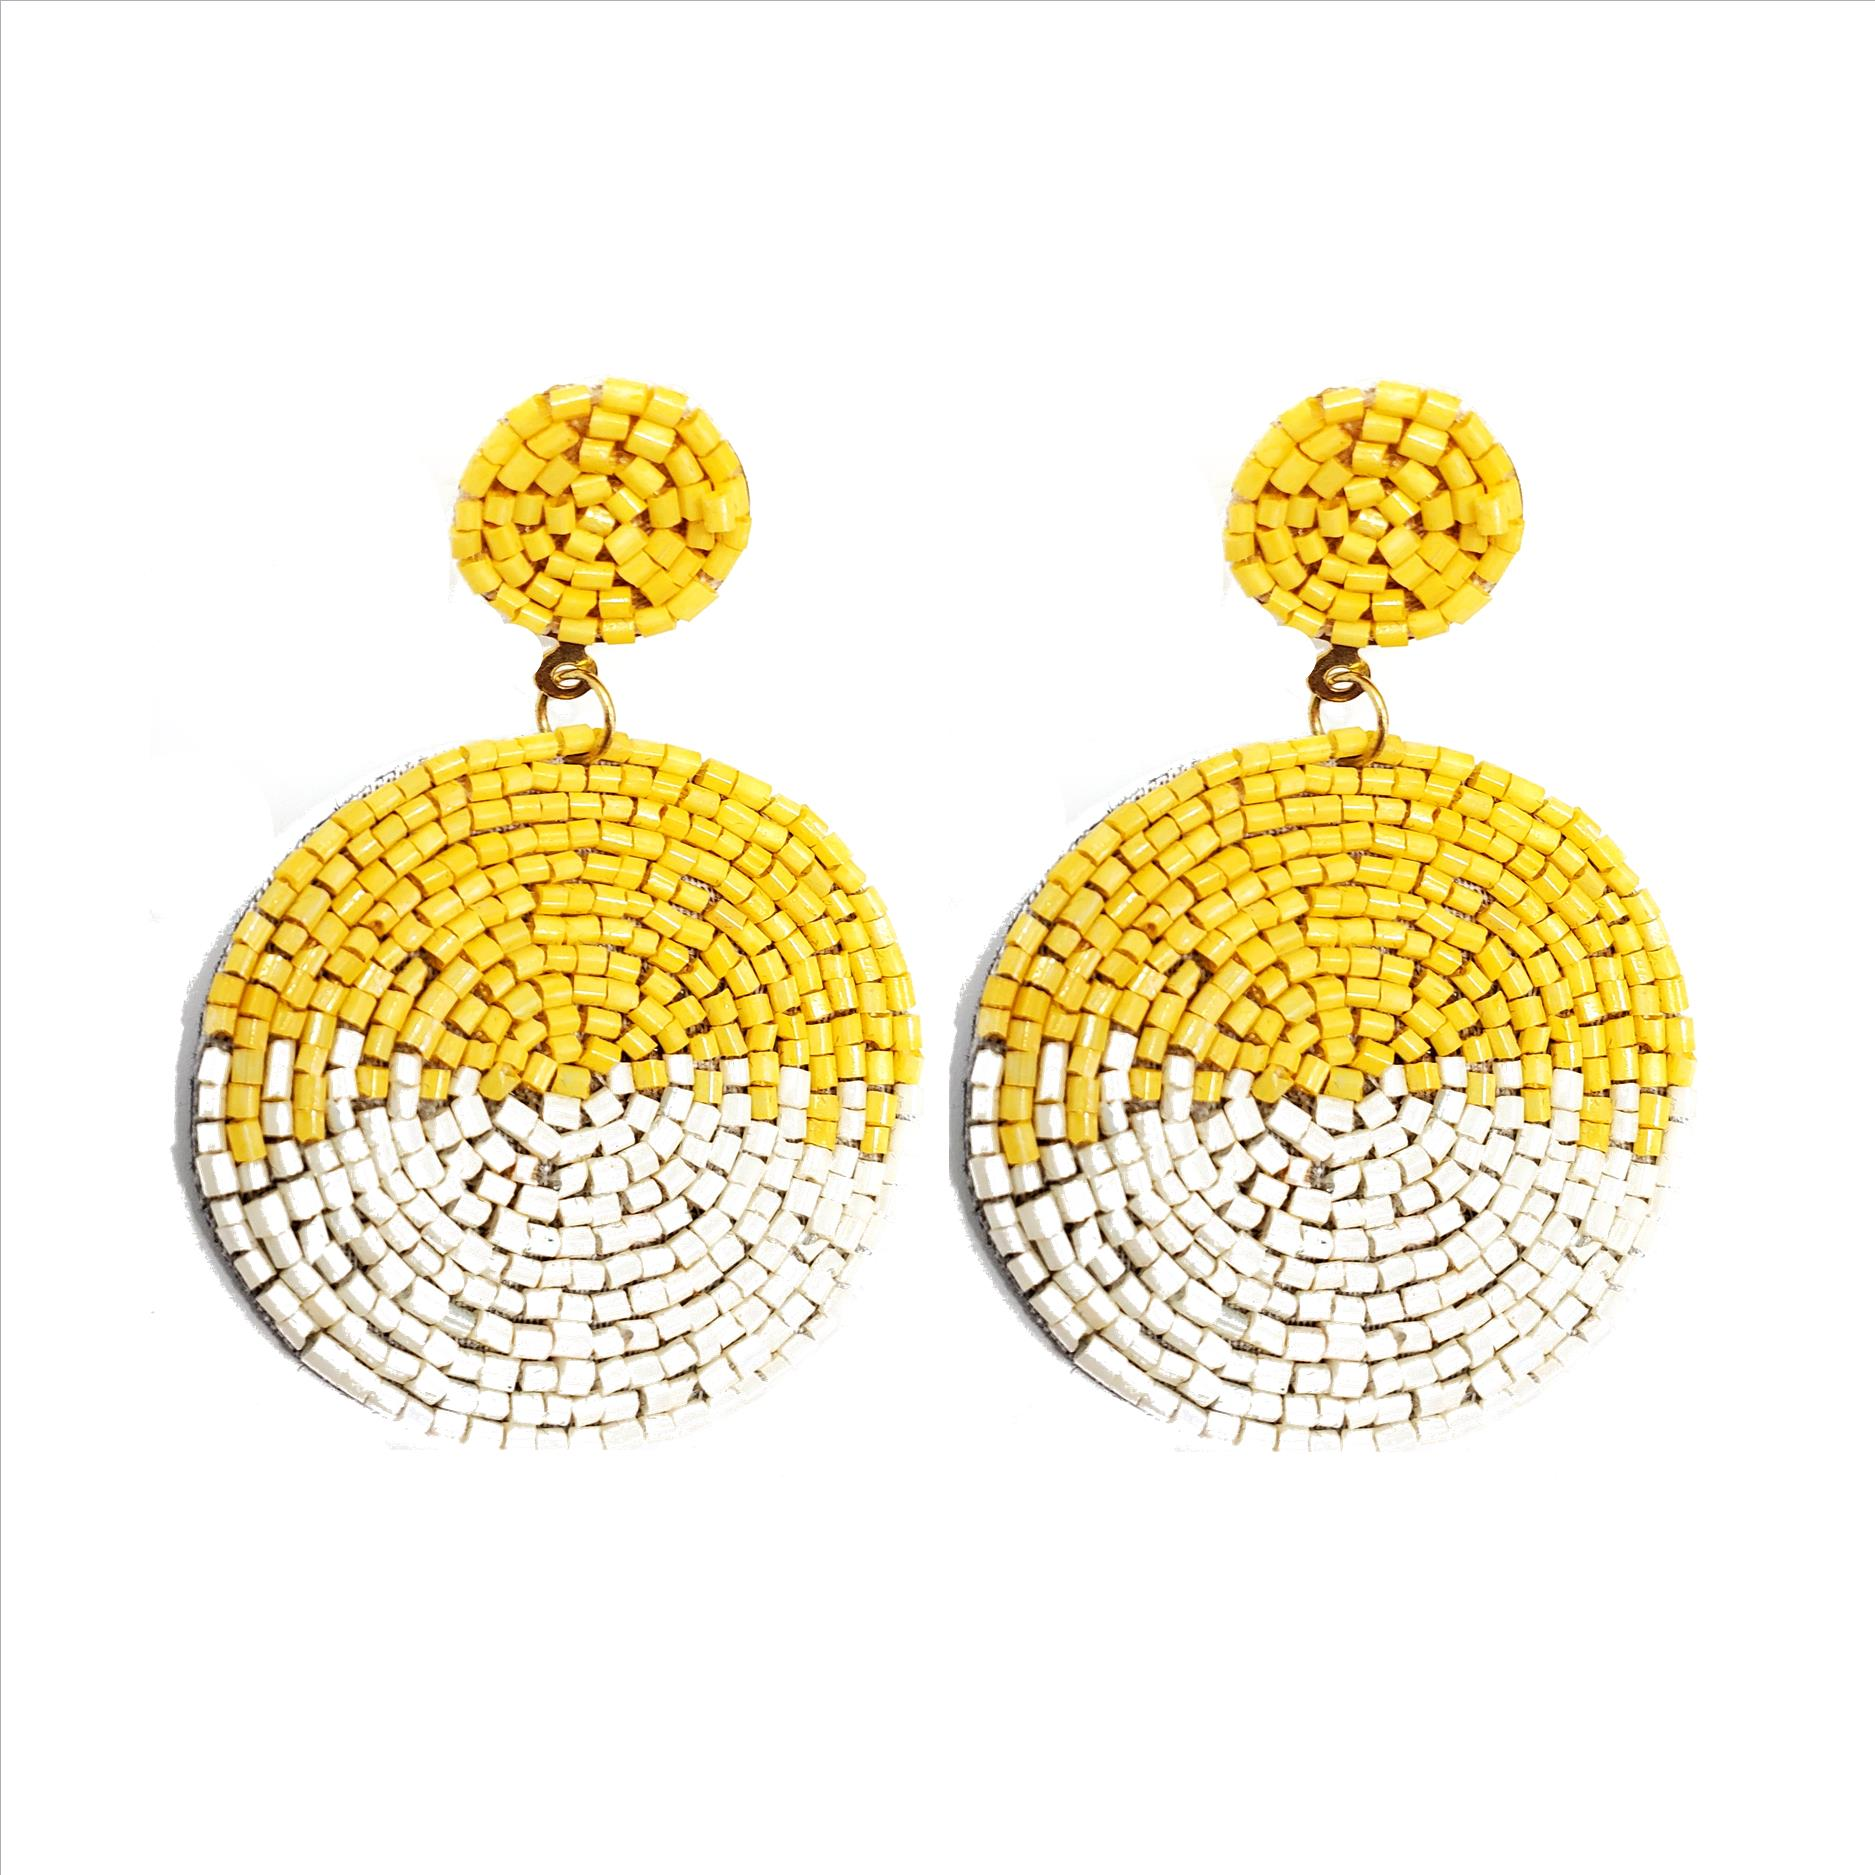 Glass Bead Round Earrings - Yellow / White